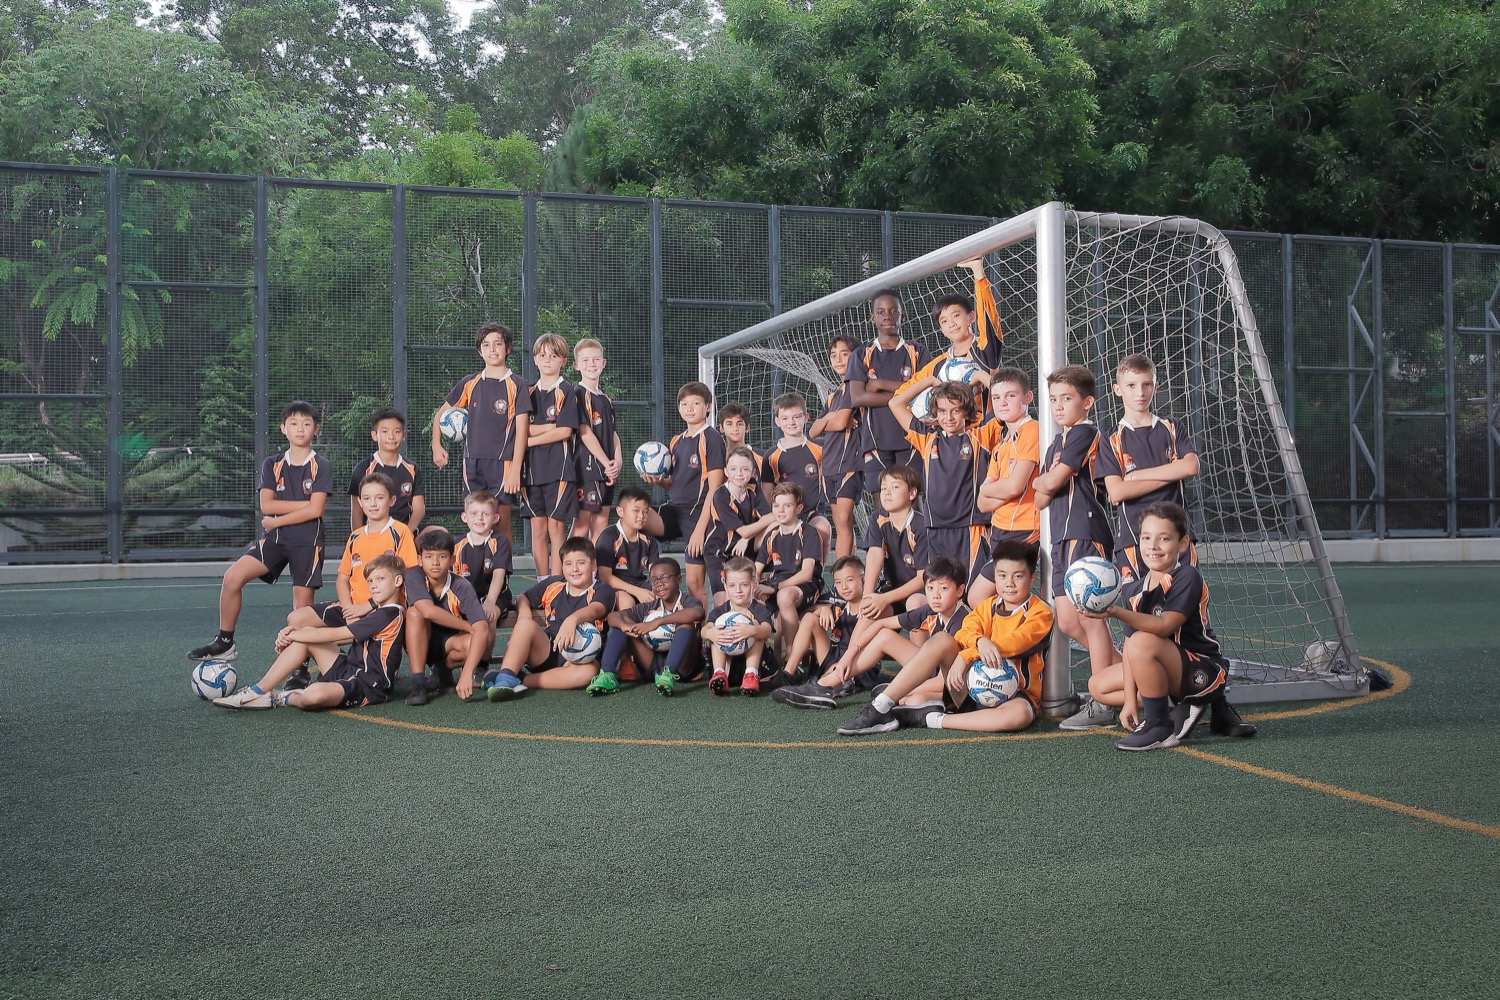 BSKL Sports Group Pose (Soccer Team)